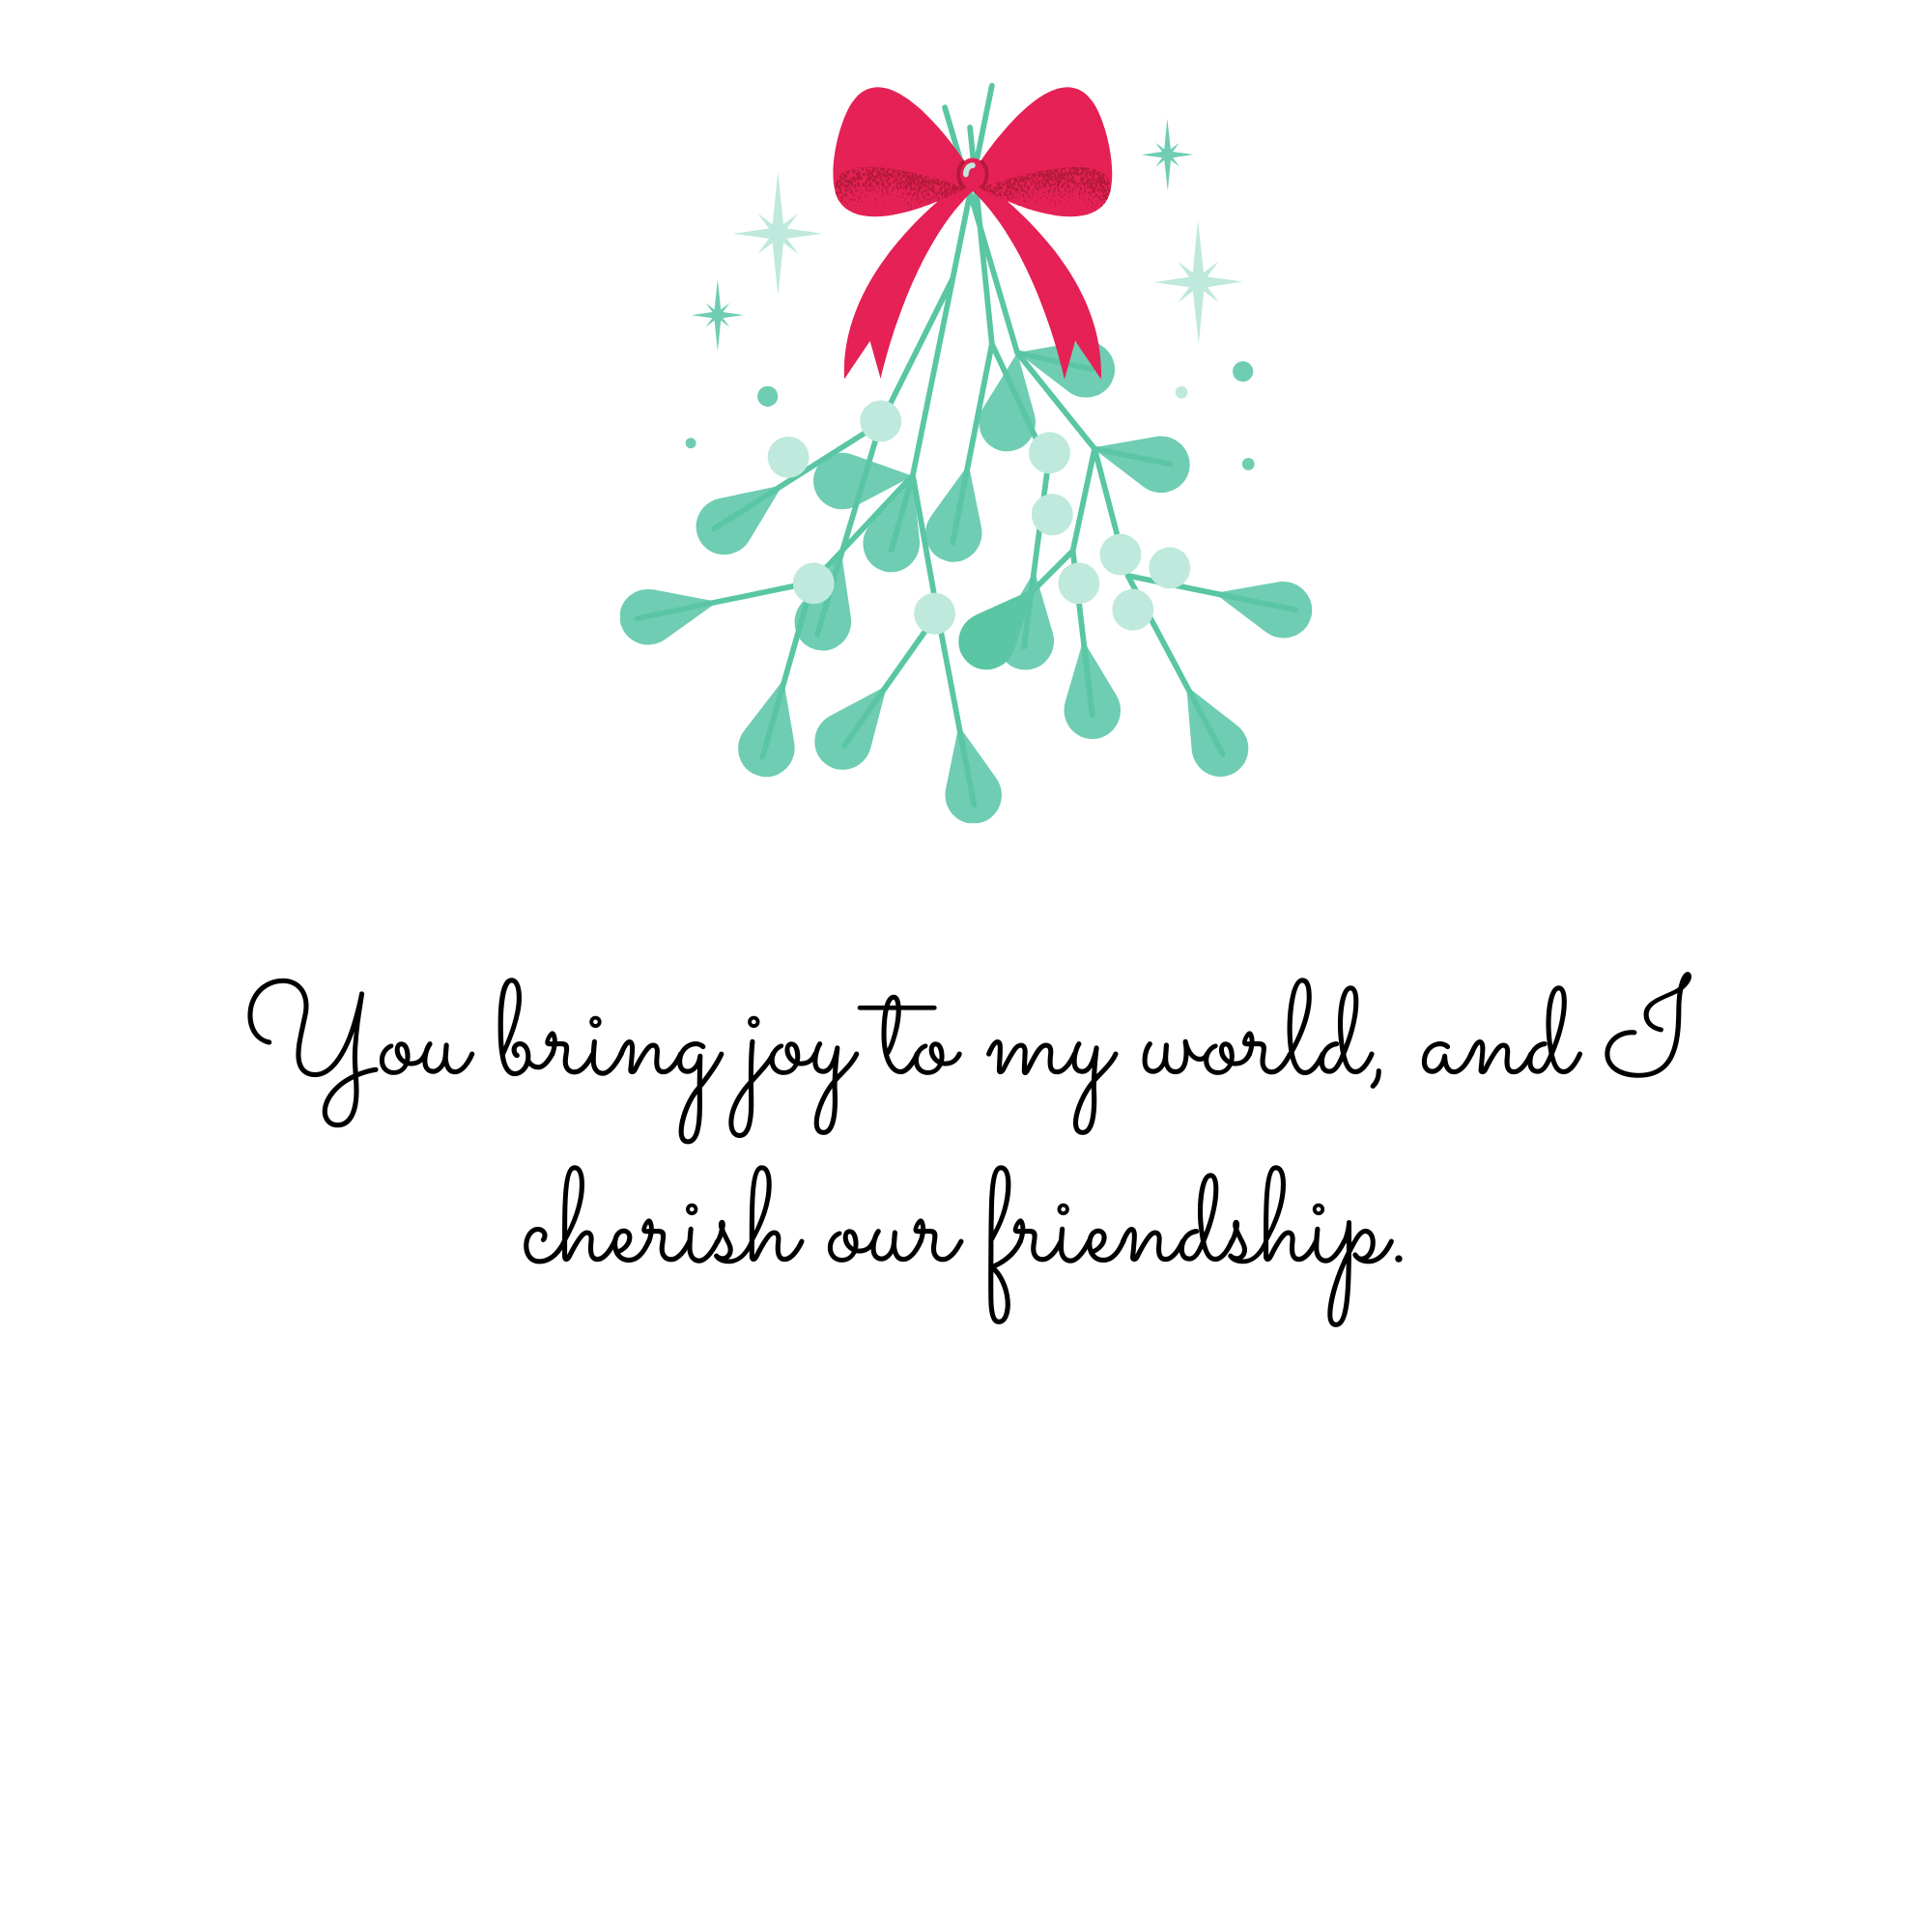 You bring joy to my world, and I cherish our friendship.